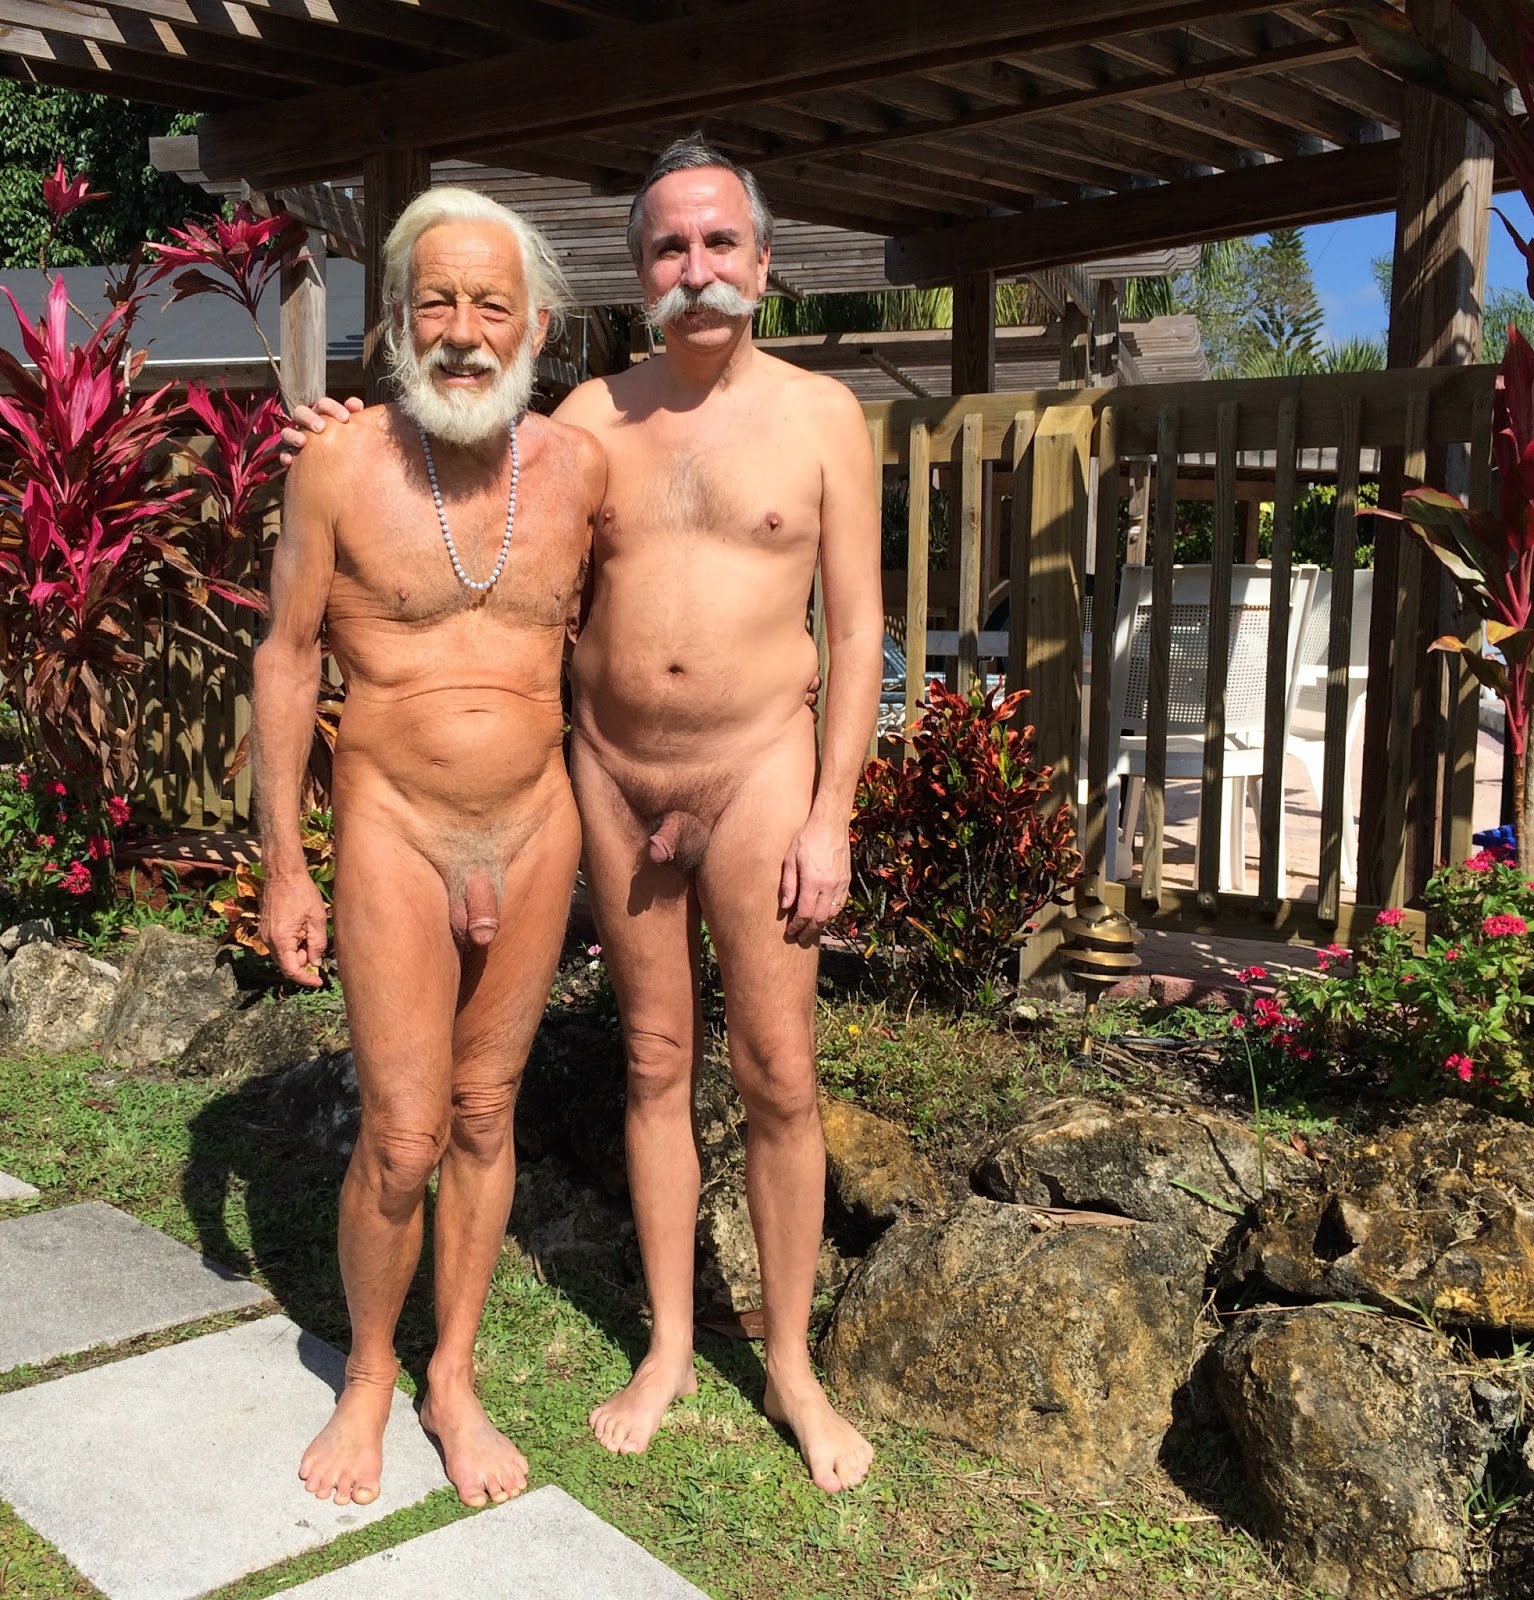 Sunsport Gardens Family Naturist Resort - Home Facebook